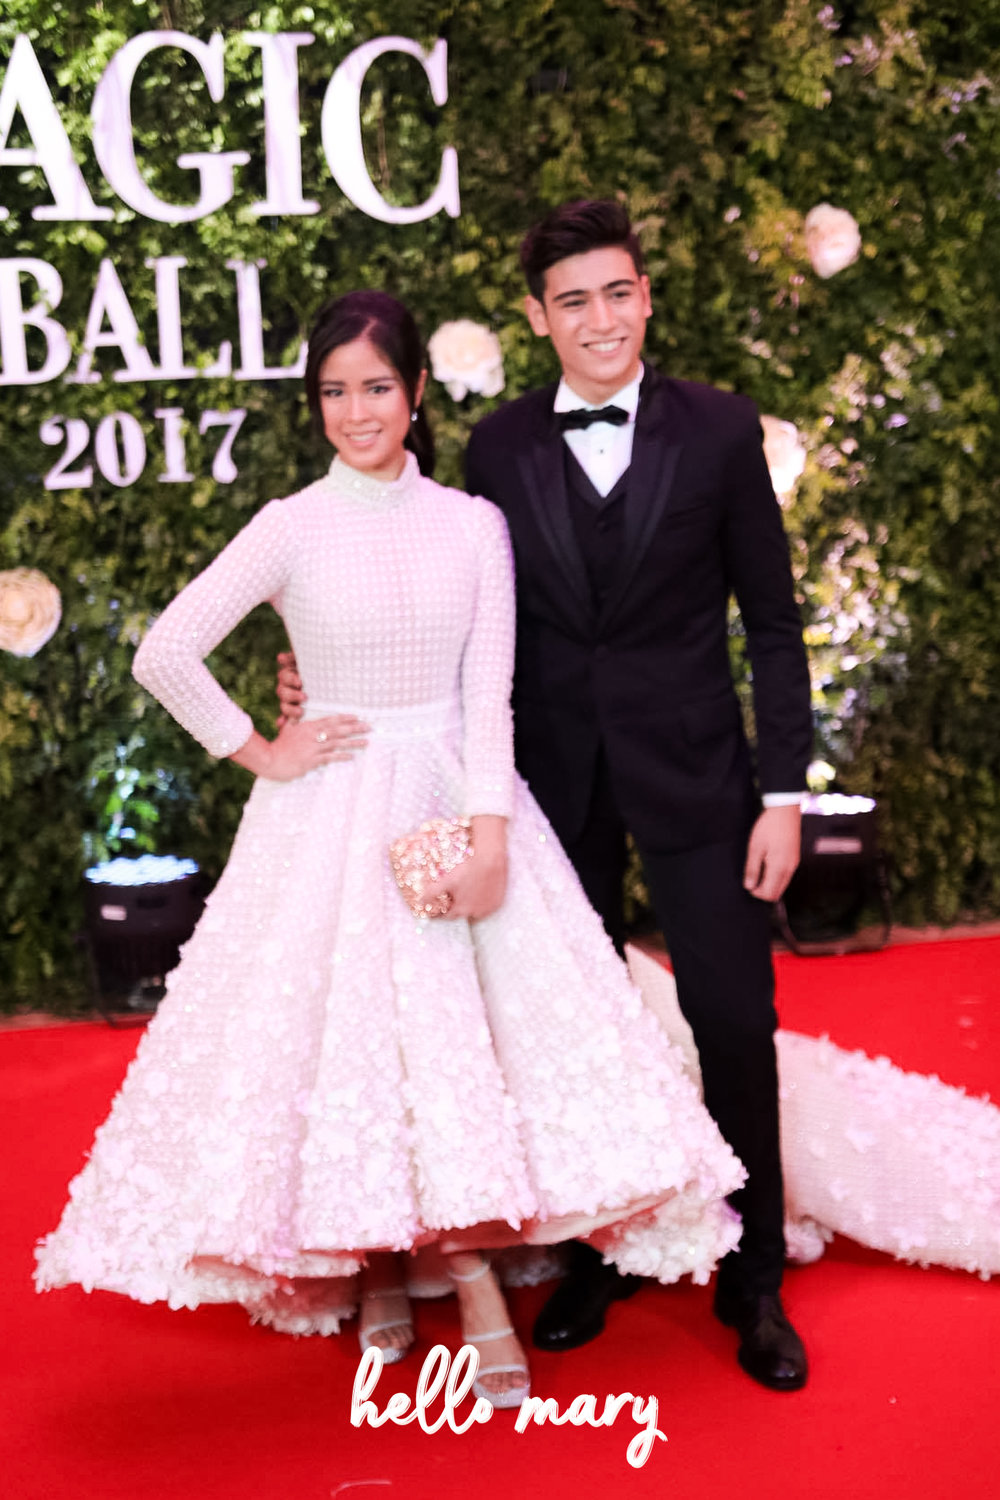 KissMarc - Kisses Delavin and Marco Gallo. Best dressed couple? Pretty much.